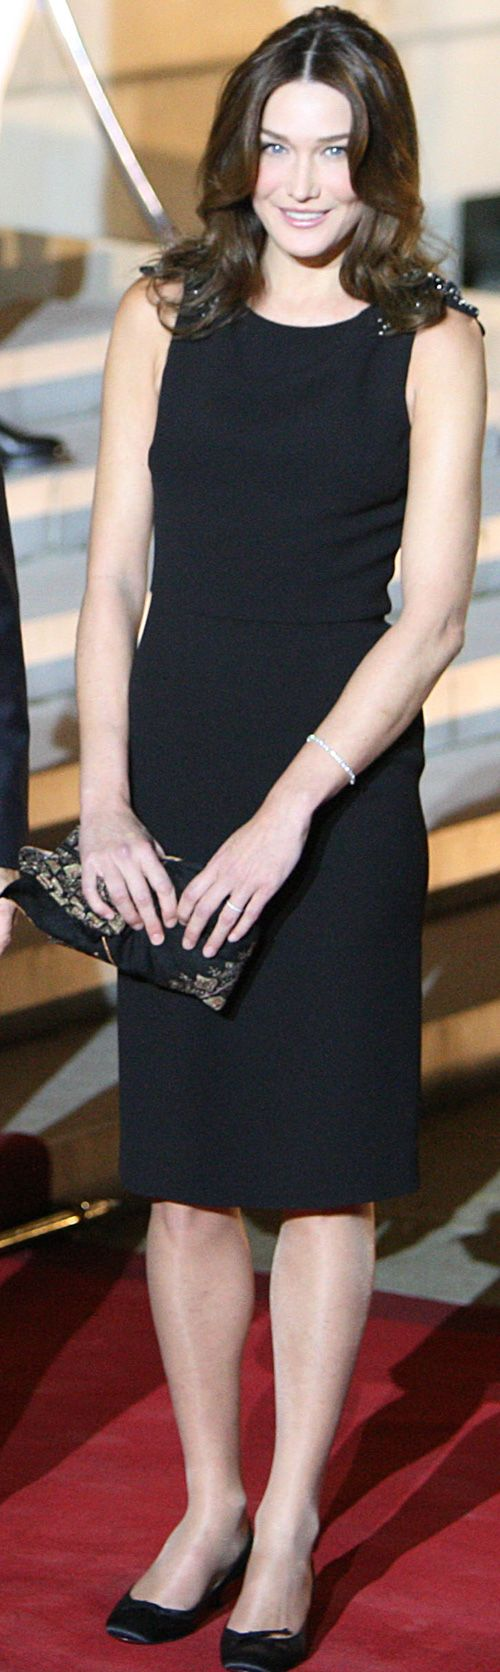 Carla Bruni's Little Black Dress (PHOTOS)